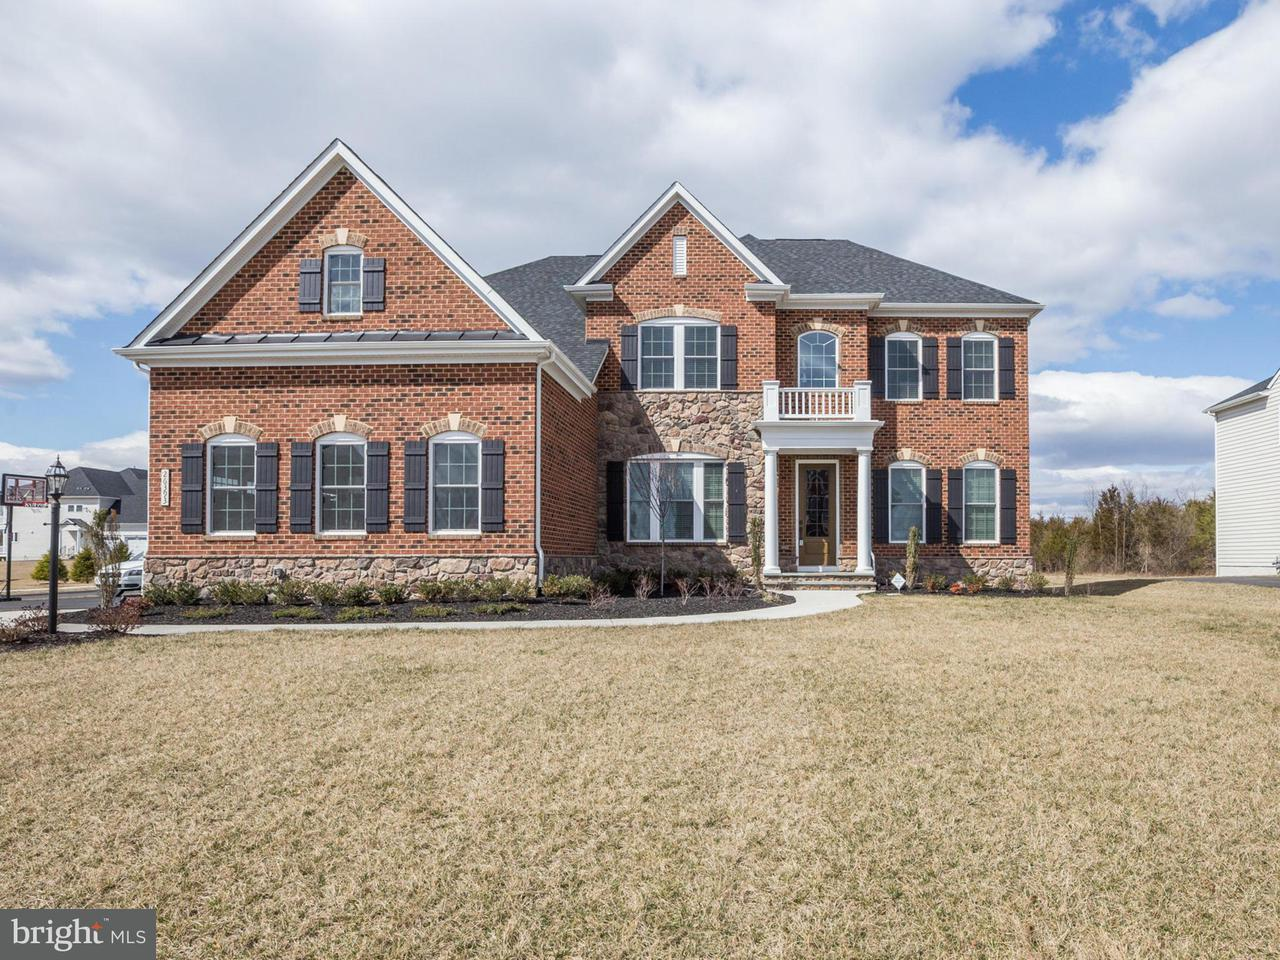 Single Family Home for Sale at 26393 Linton Pasture Place 26393 Linton Pasture Place Centreville, Virginia 20120 United States